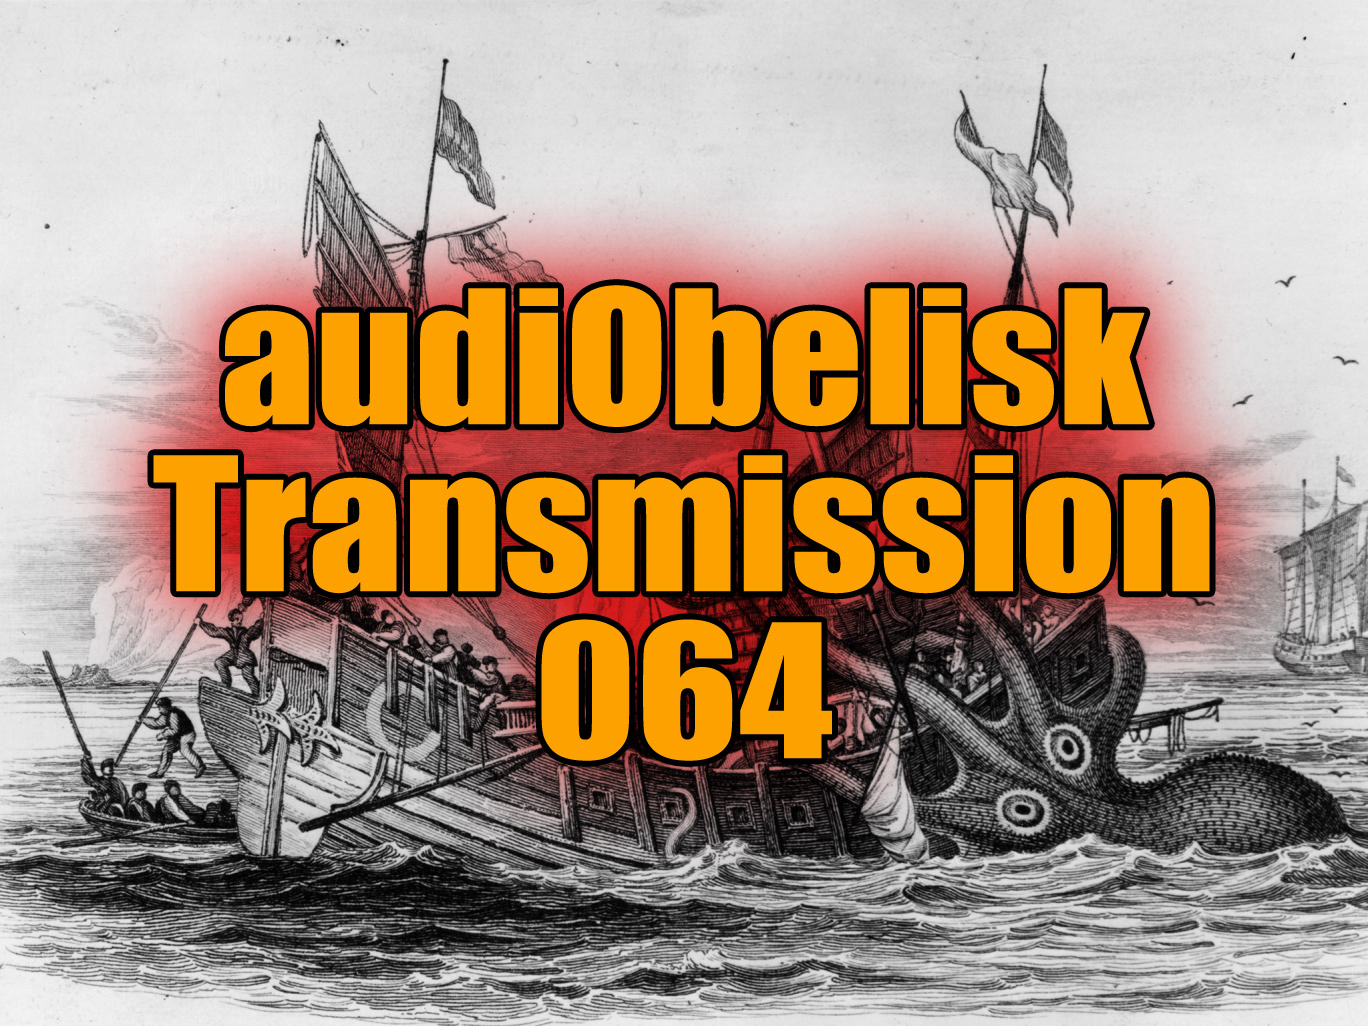 audiobelisk transmission 064